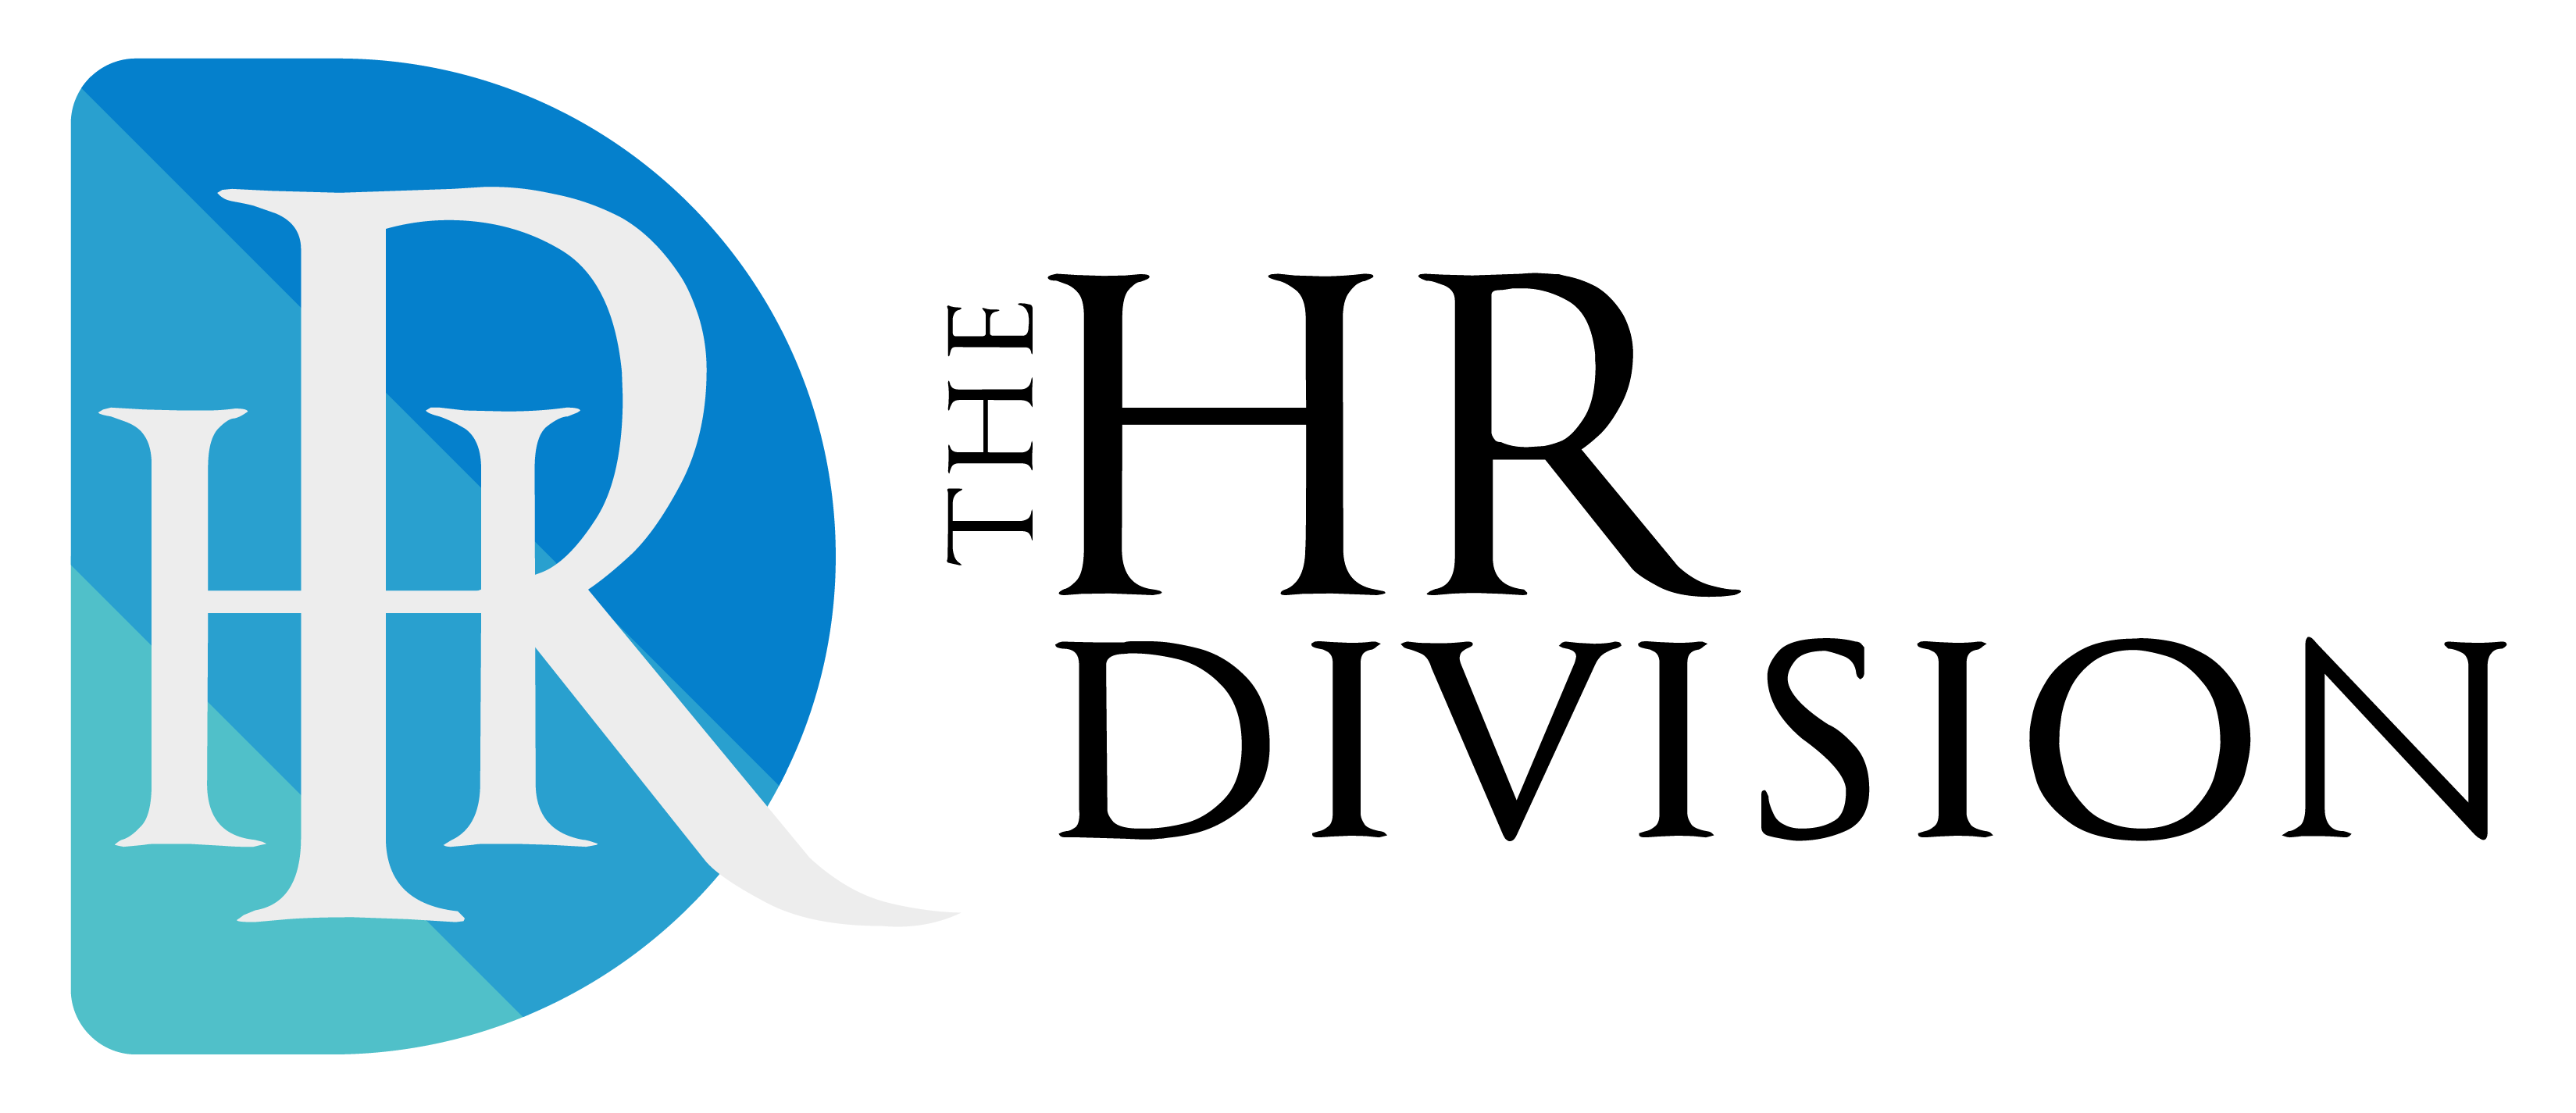 The HR Division | HR Consultancy London